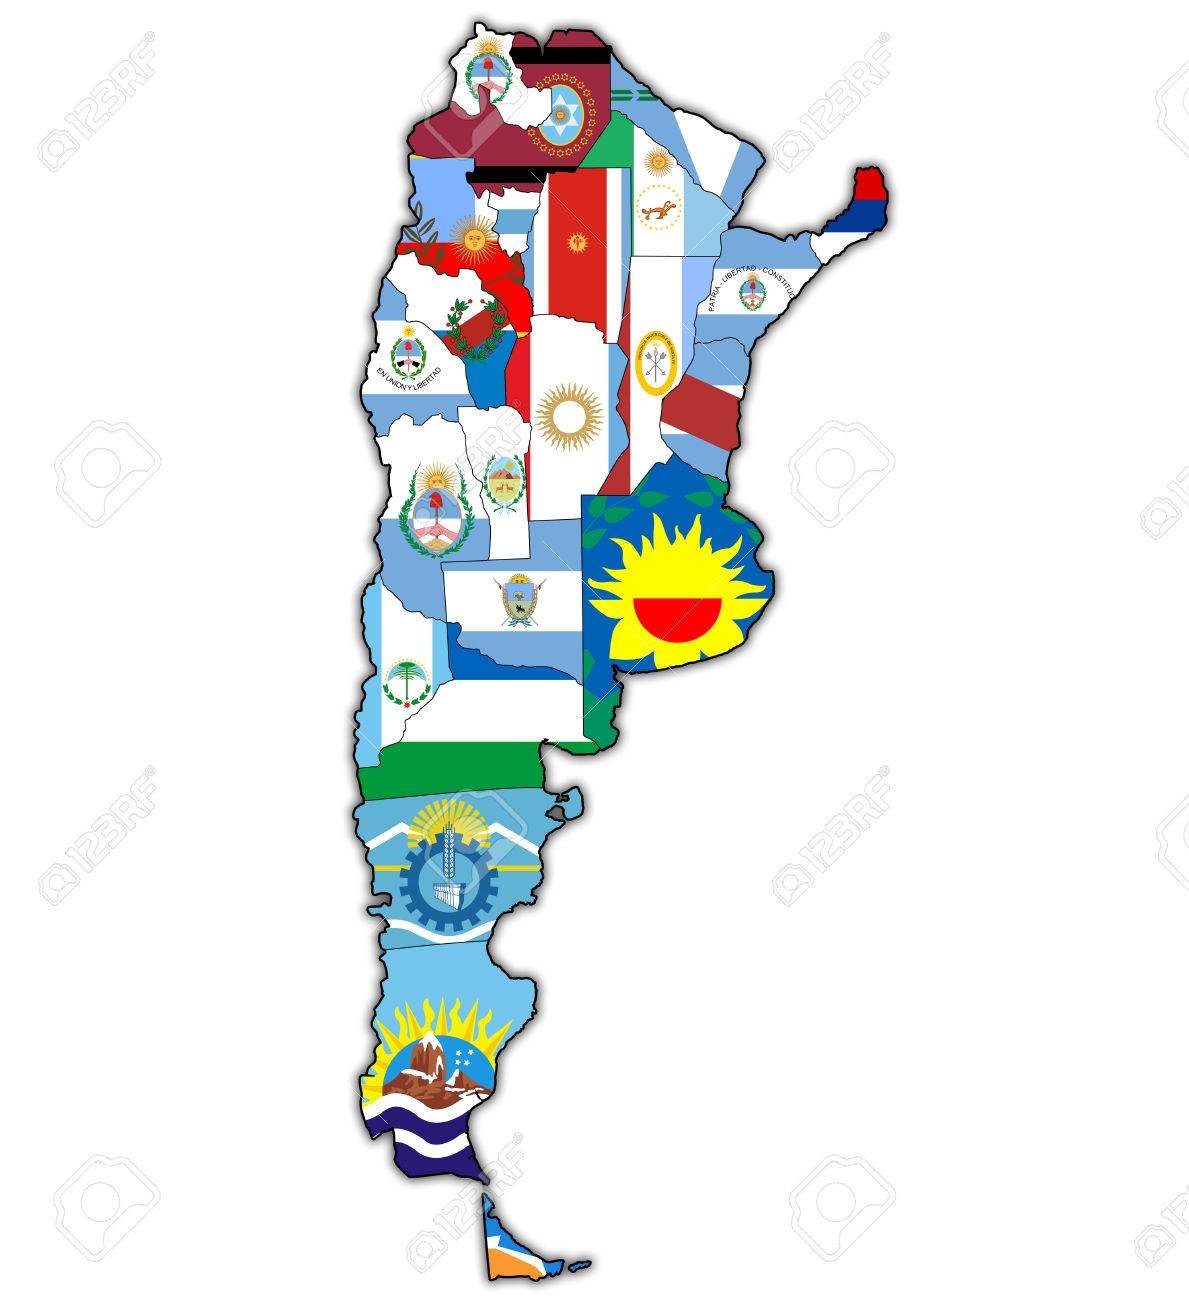 regions of argentina with flags on map of administrative divisions on map of albania with flag, map of namibia with flag, map of jordan with flag, map of germany with flag, map of liberia with flag, map of north america with flag, map of the united states with flag, map of india with flag, map of madagascar with flag, map of china with flag, map of japan with flag, map of greece with flag, map of togo with flag, map of syria with flag, map of lebanon with flag, map of england with flag, map of egypt with flag, map of ireland with flag, map of saudi arabia with flag, map of brazil with flag,